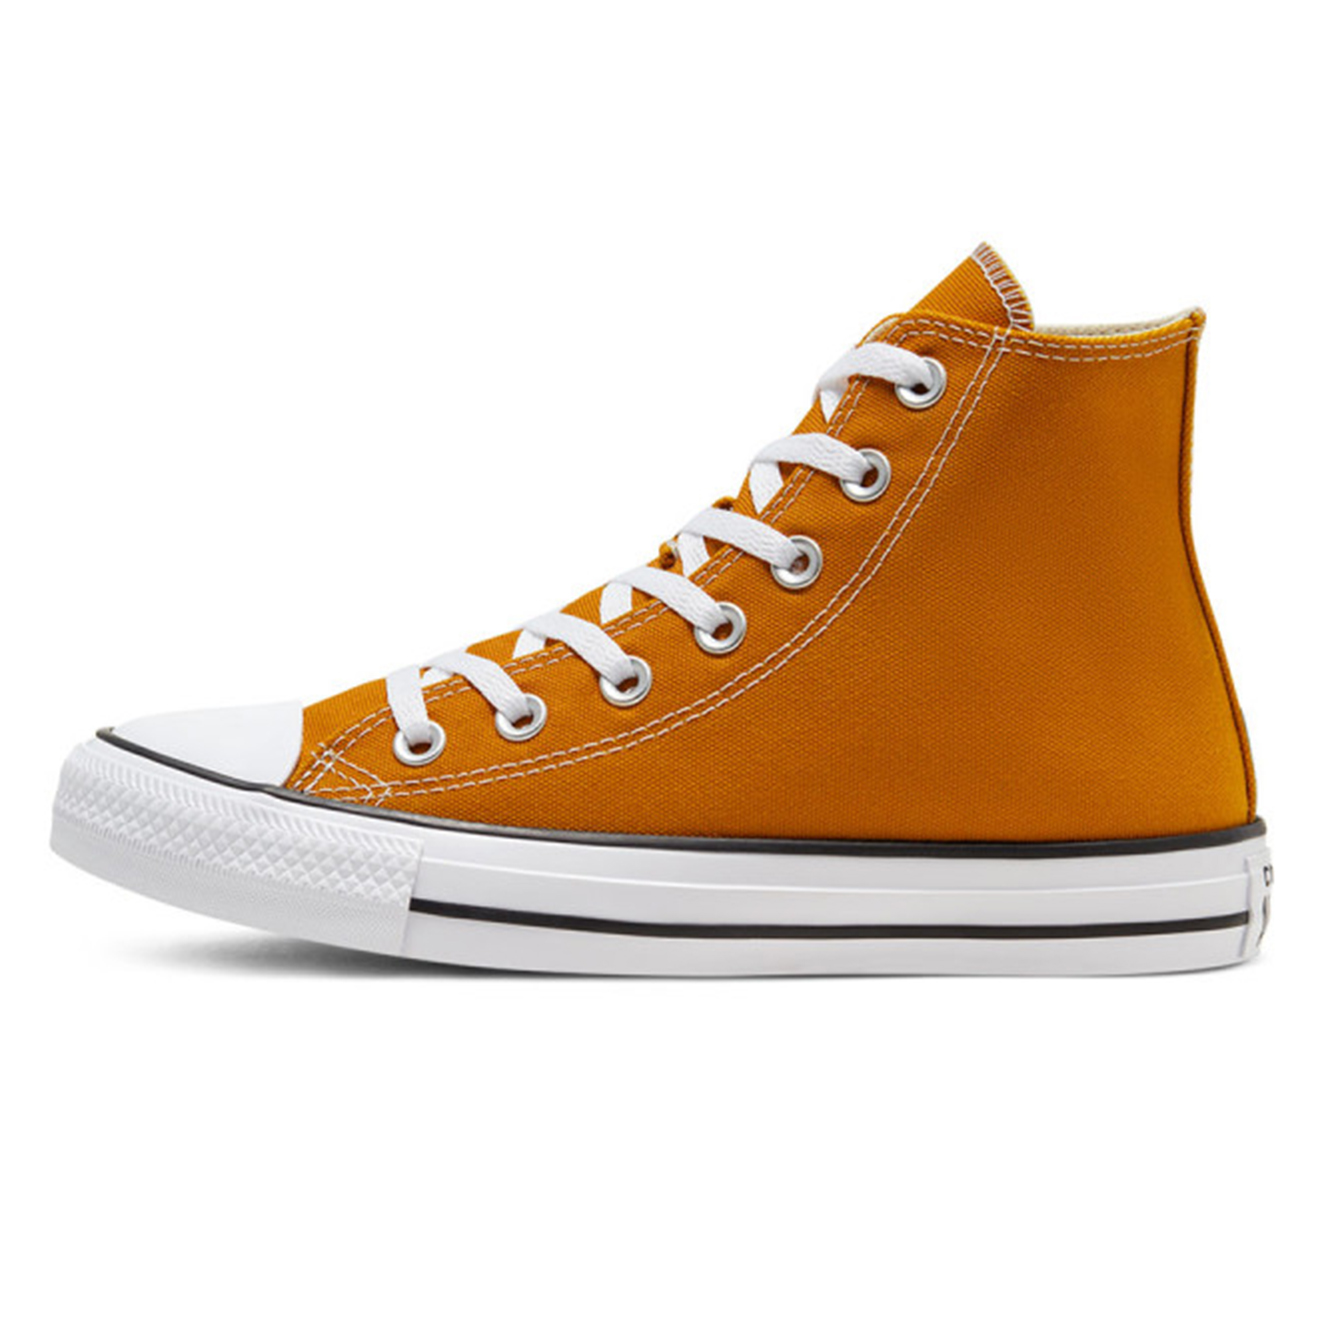 Baskets Canvas Hi orange - Converse - Modalova